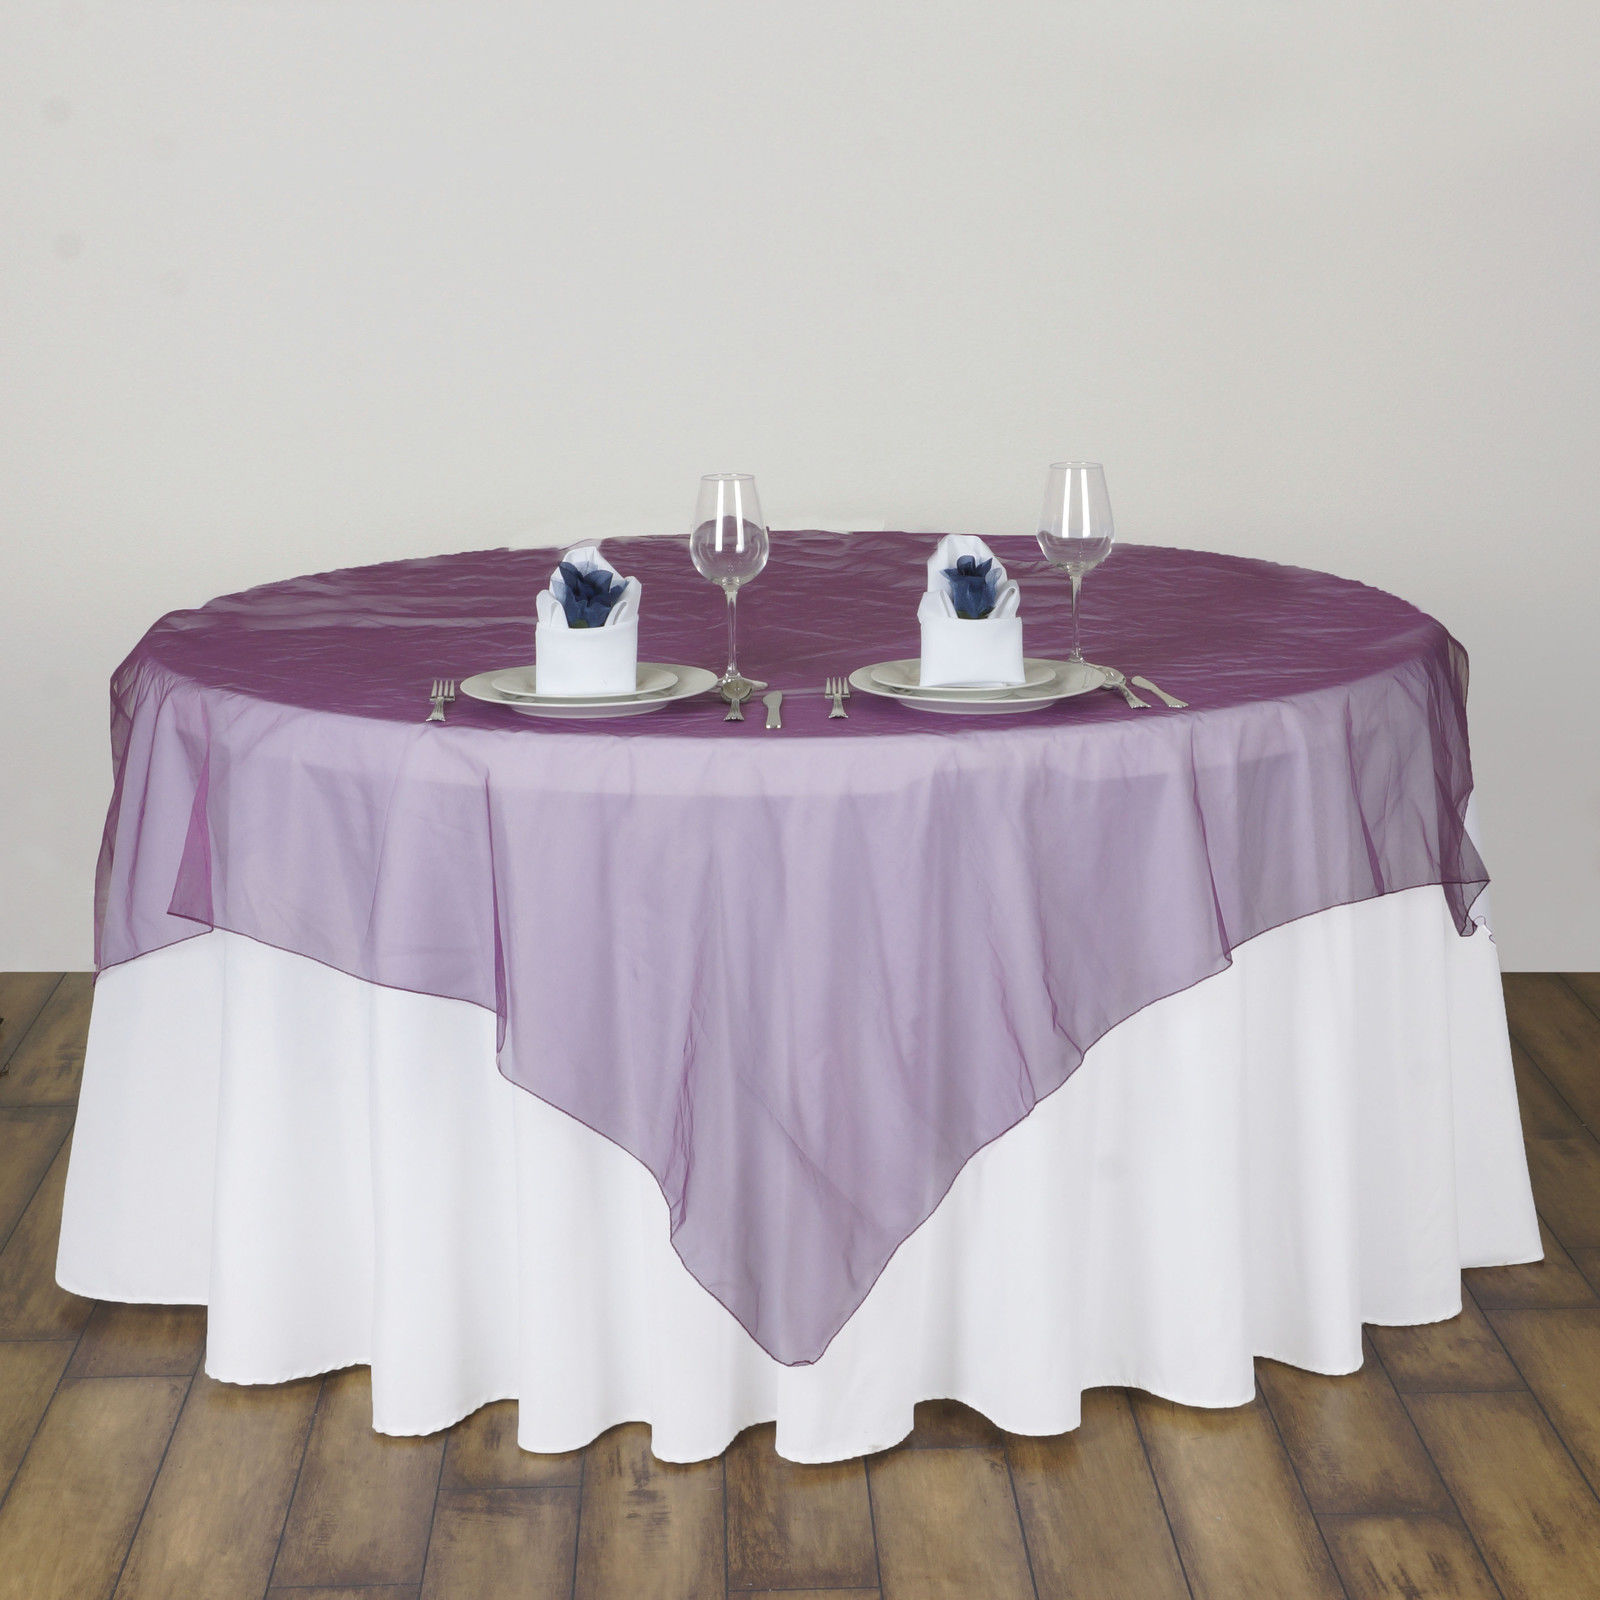 135x135cm Modern square Organza Tablecloth Dining Coffee Table Cloth Cover dustproof Wedding Banquet Hotel Decoration Overlay(China (Mainland))